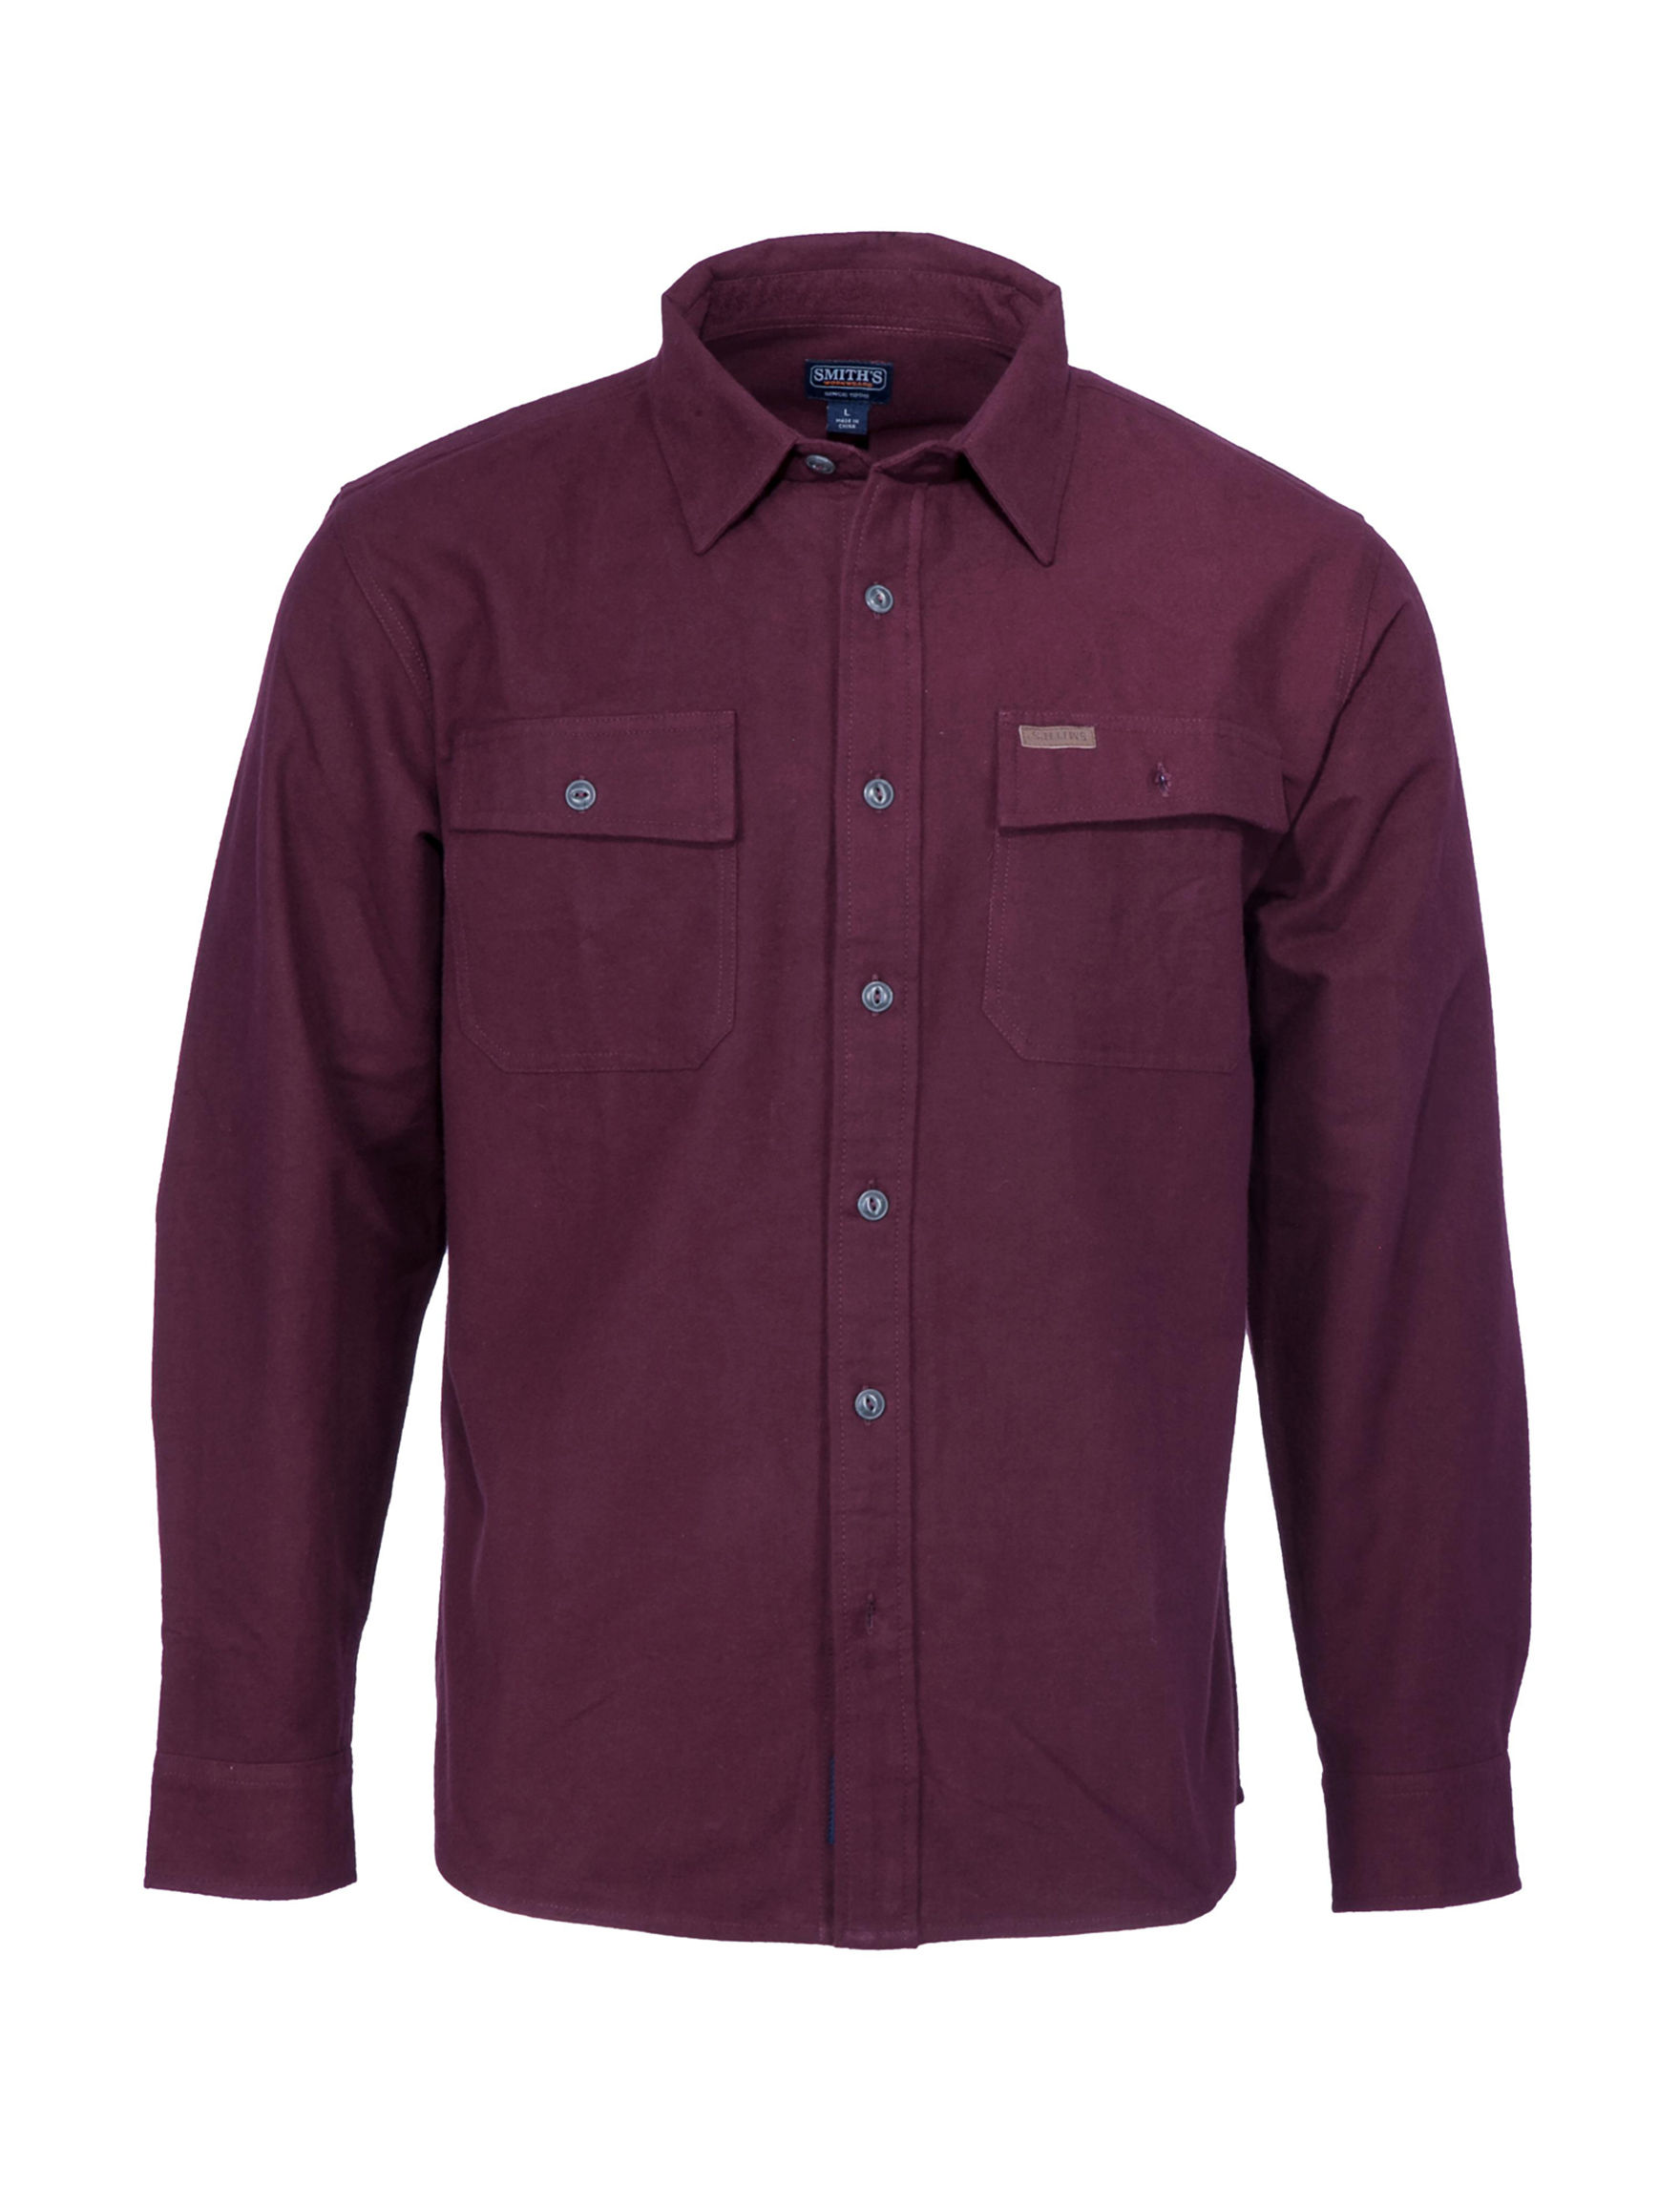 Smith's Workwear Wine Casual Button Down Shirts